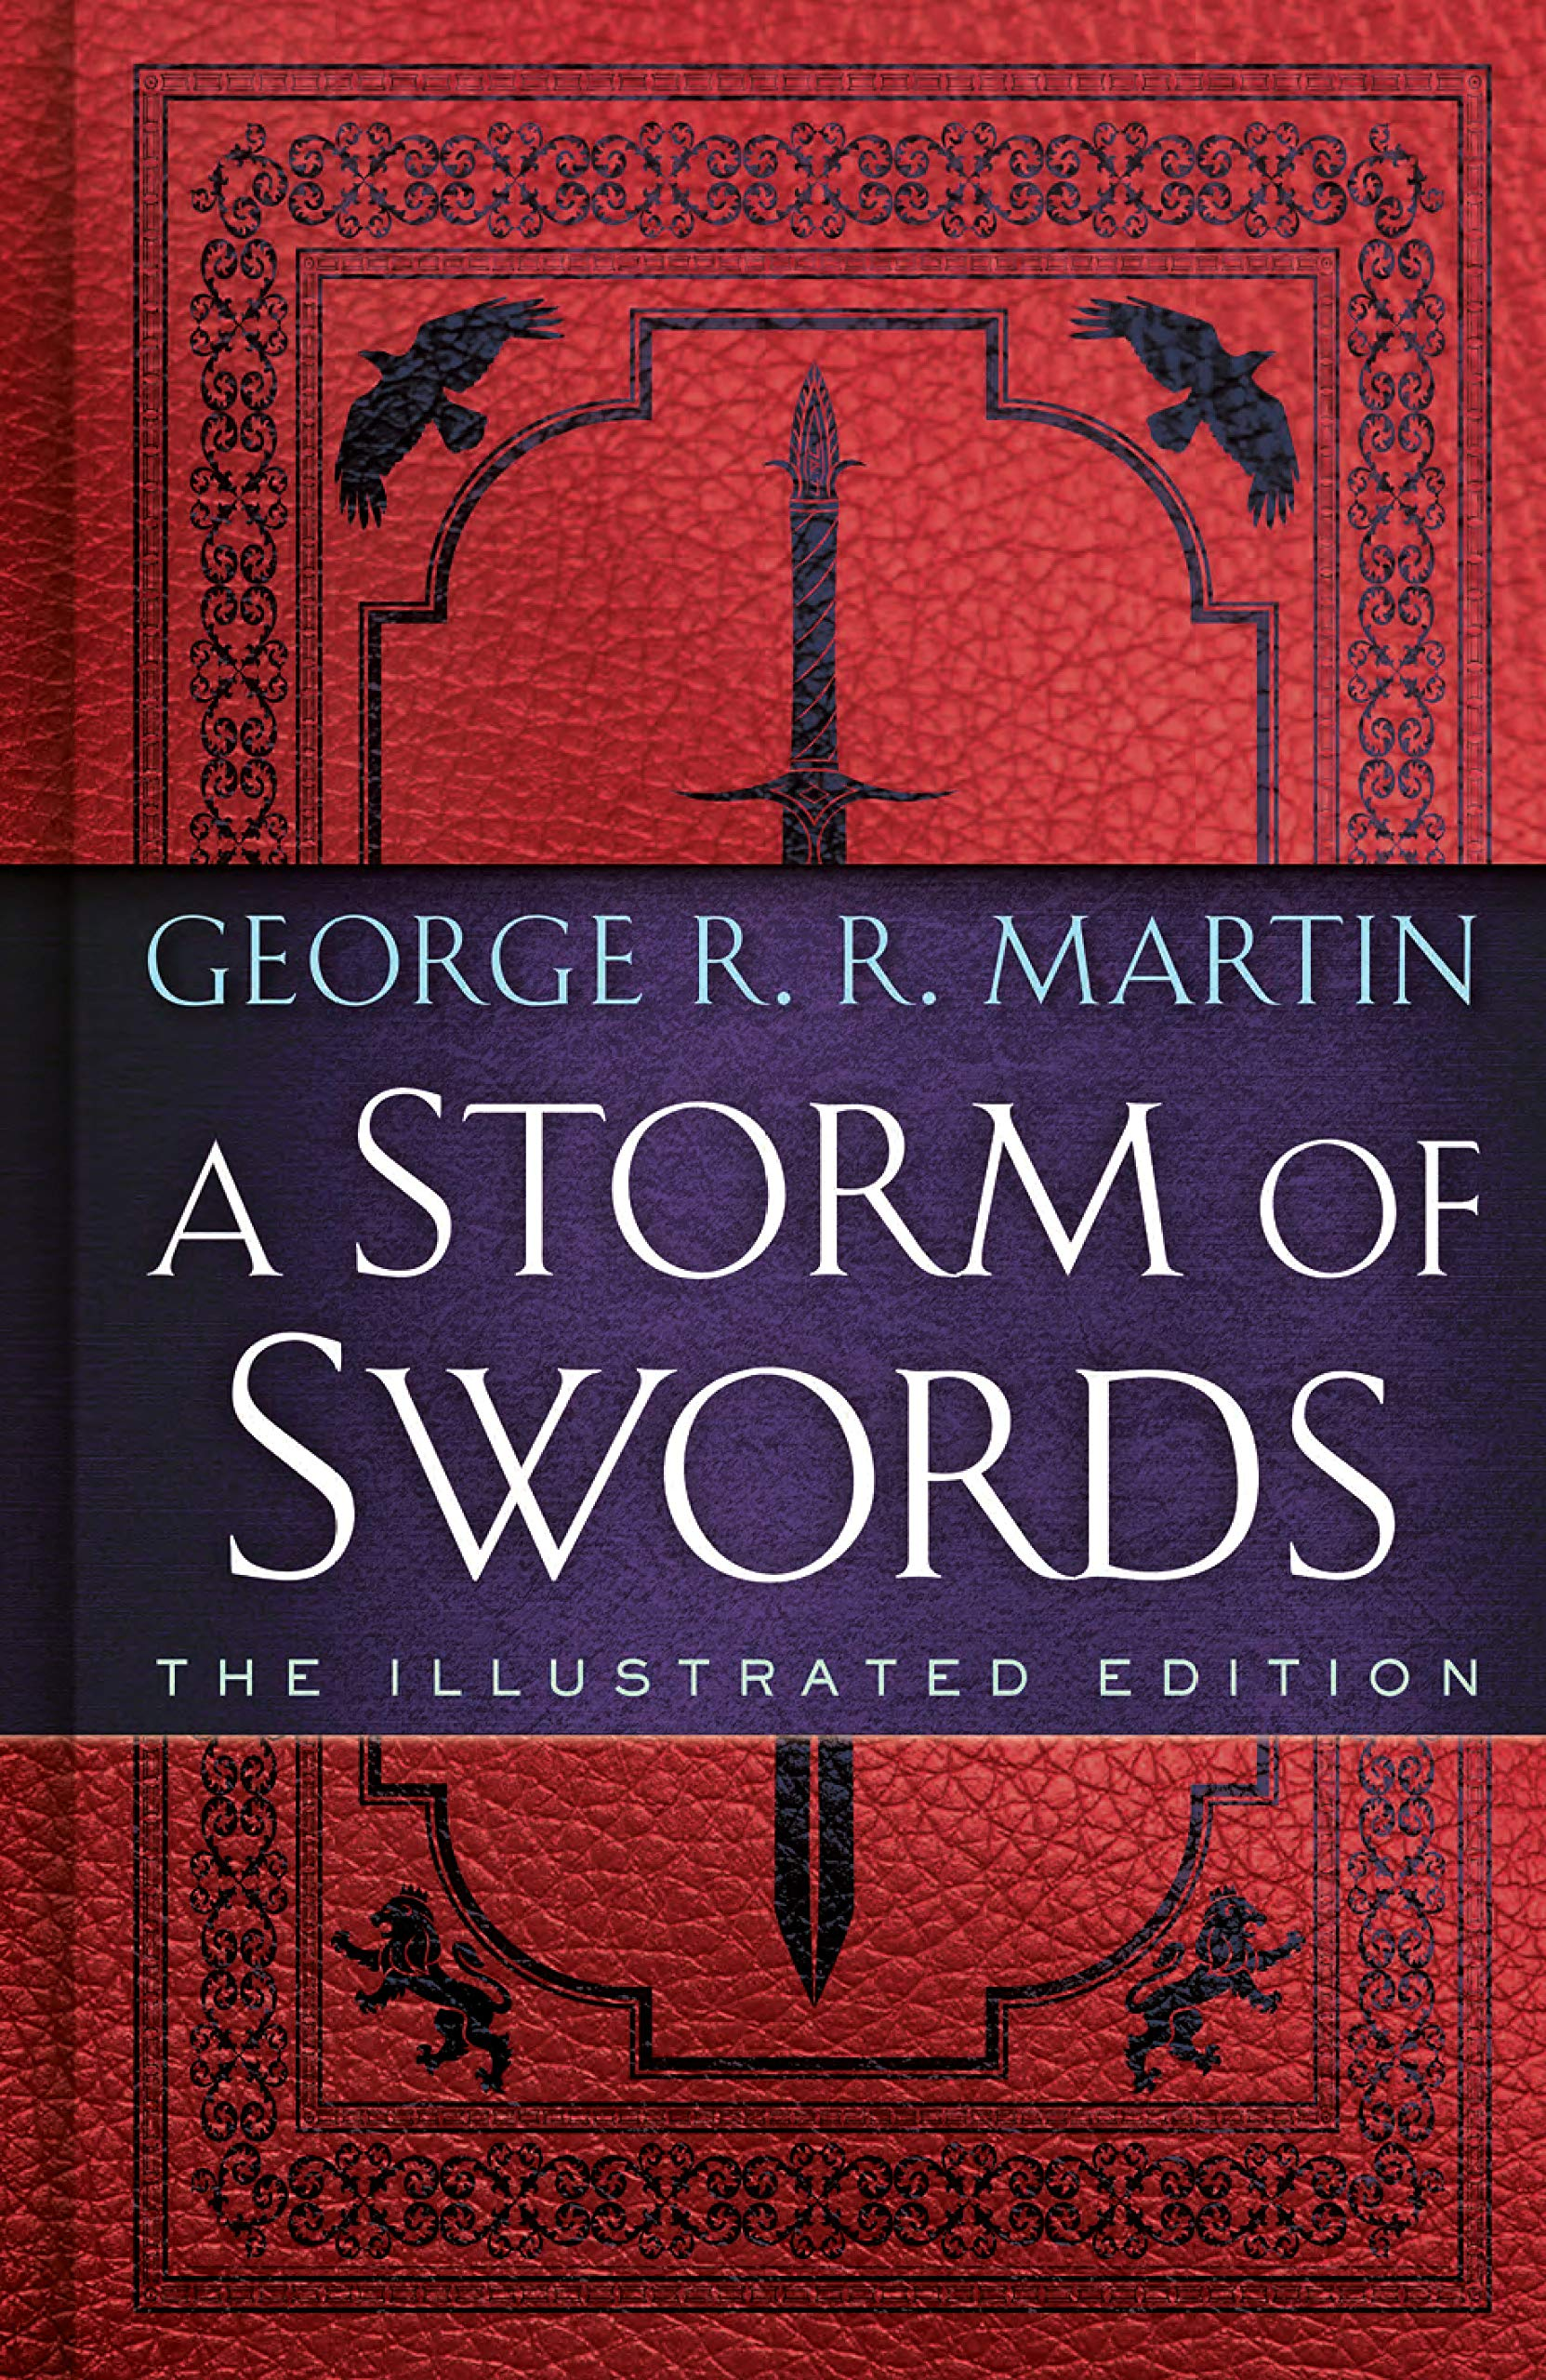 A Storm of Swords: The Illustrated Edition: The Illustrated Edition (A Song of Ice and Fire Illustrated Edition) pdf epub